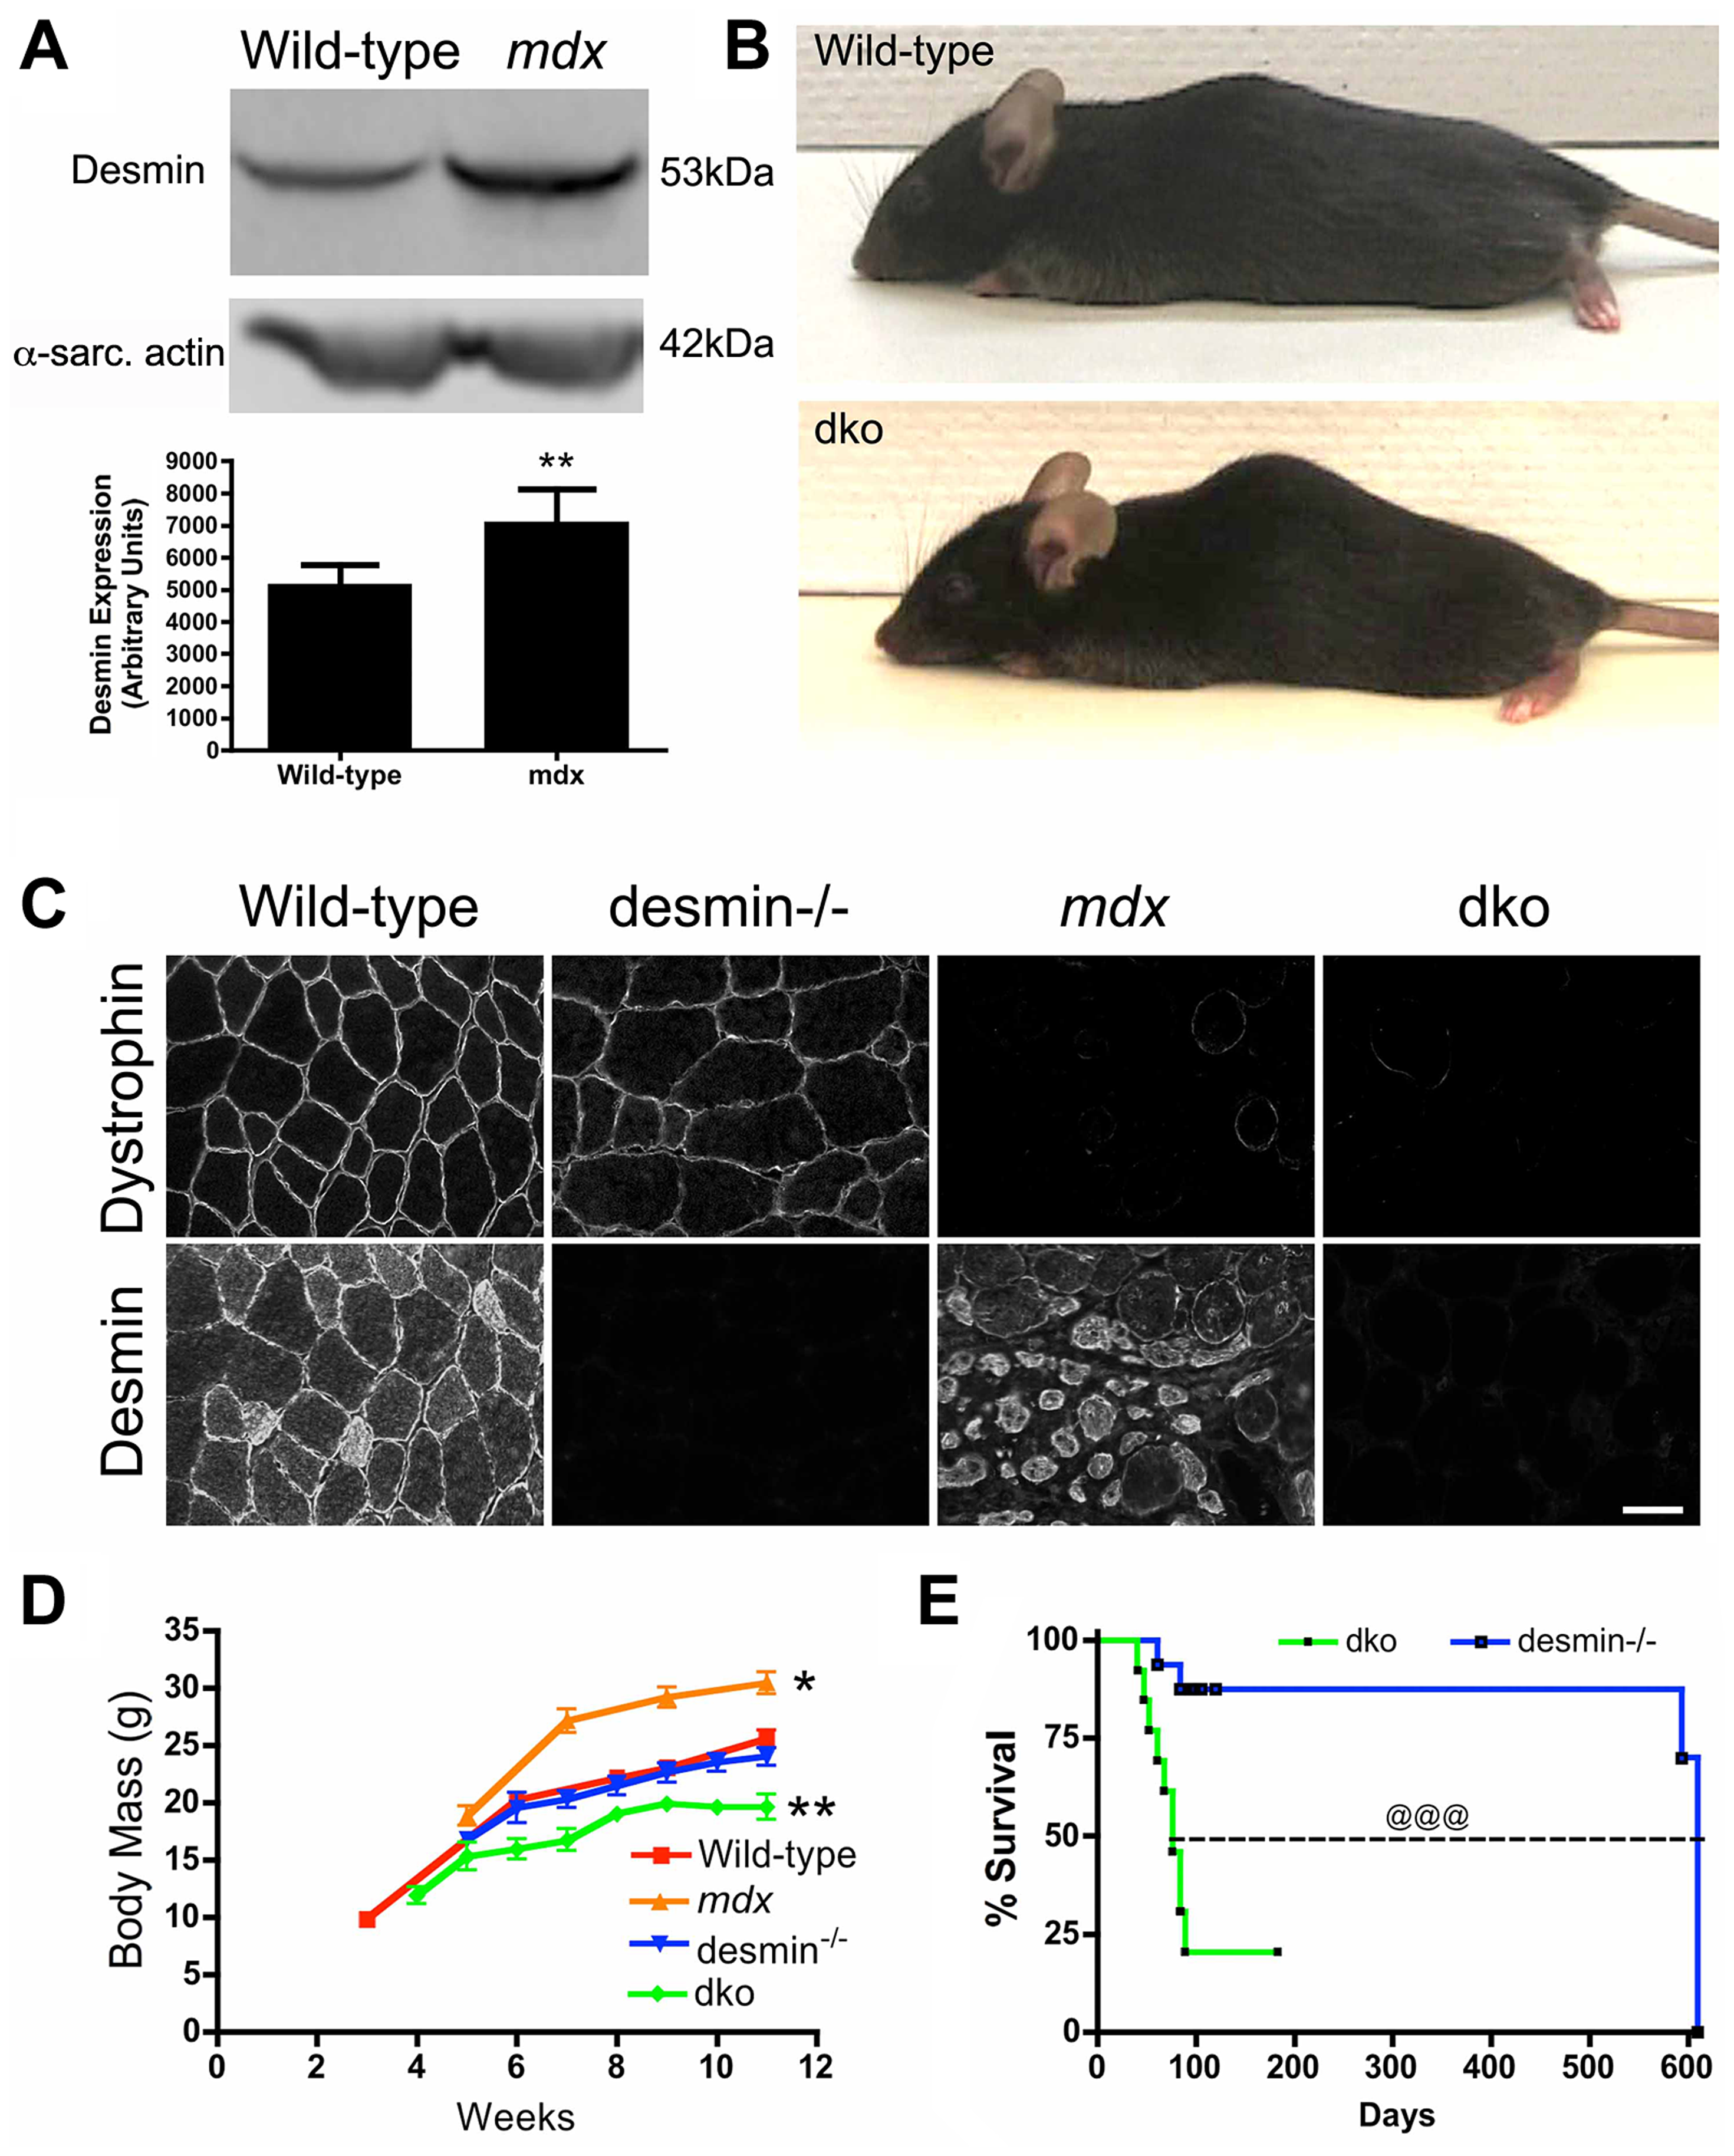 The genetic deletion of desmin from <i>mdx<sup>4cv</sup></i> mice reduces body mass and survival.